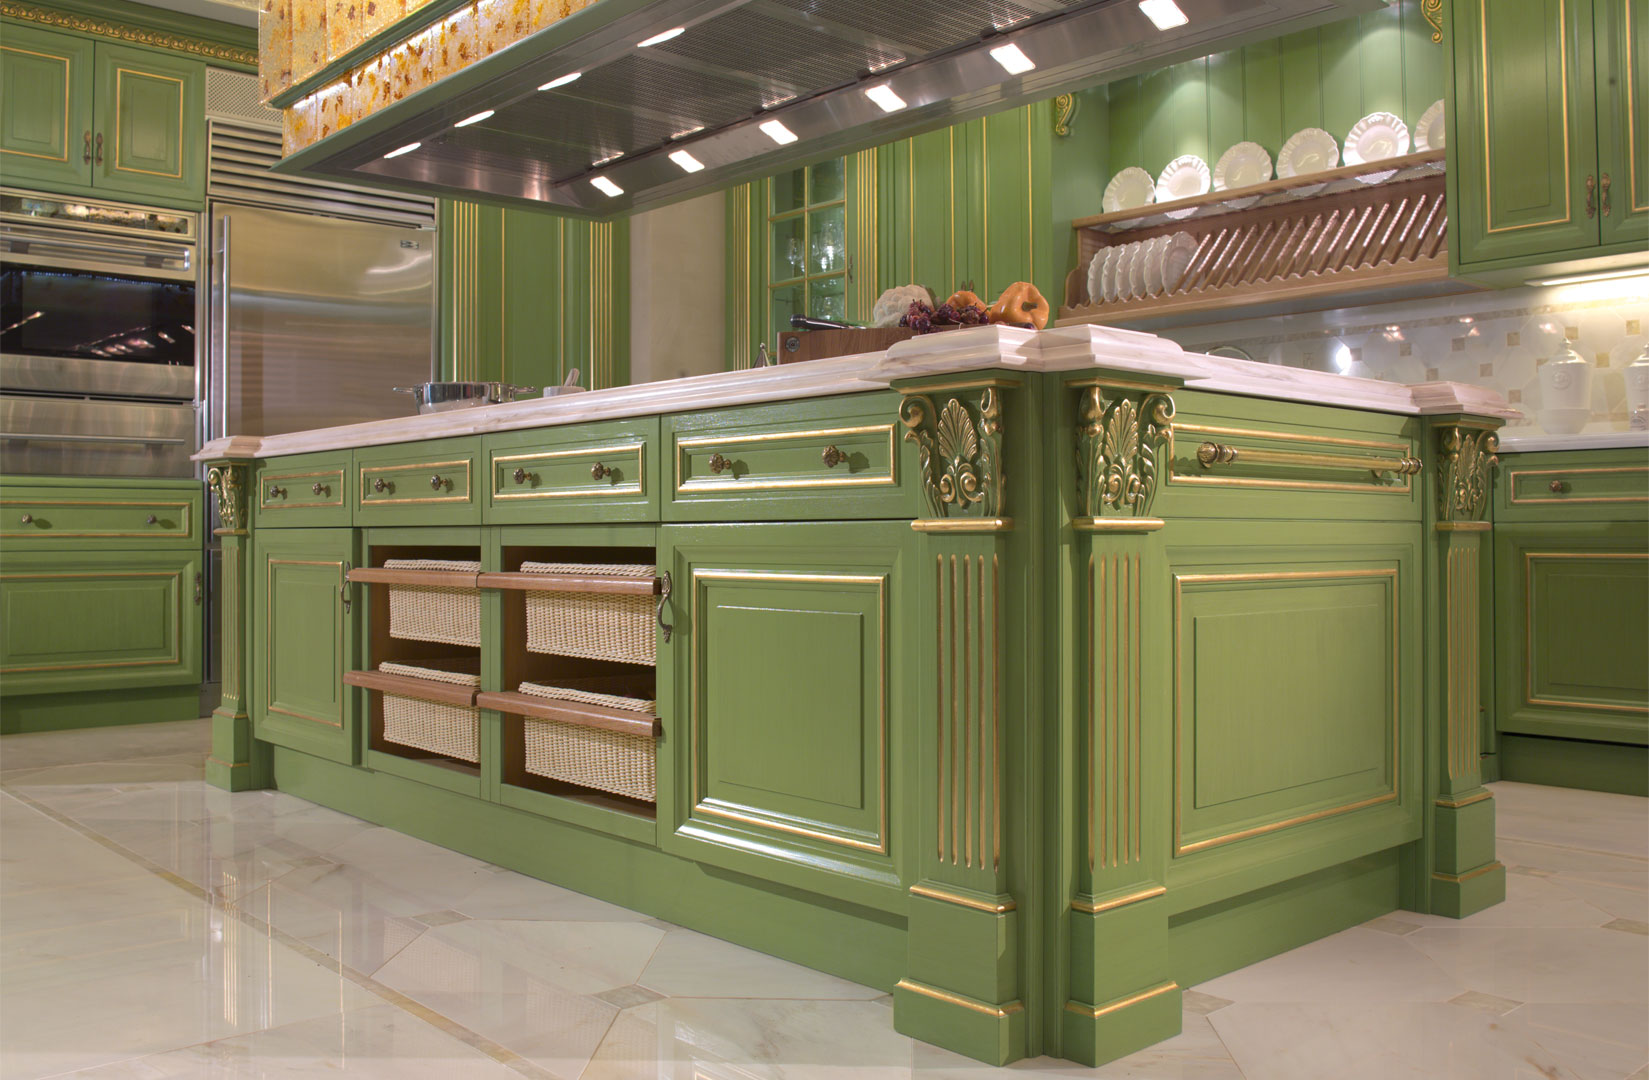 A luxury kitchen with gold foil decorations and brass handles